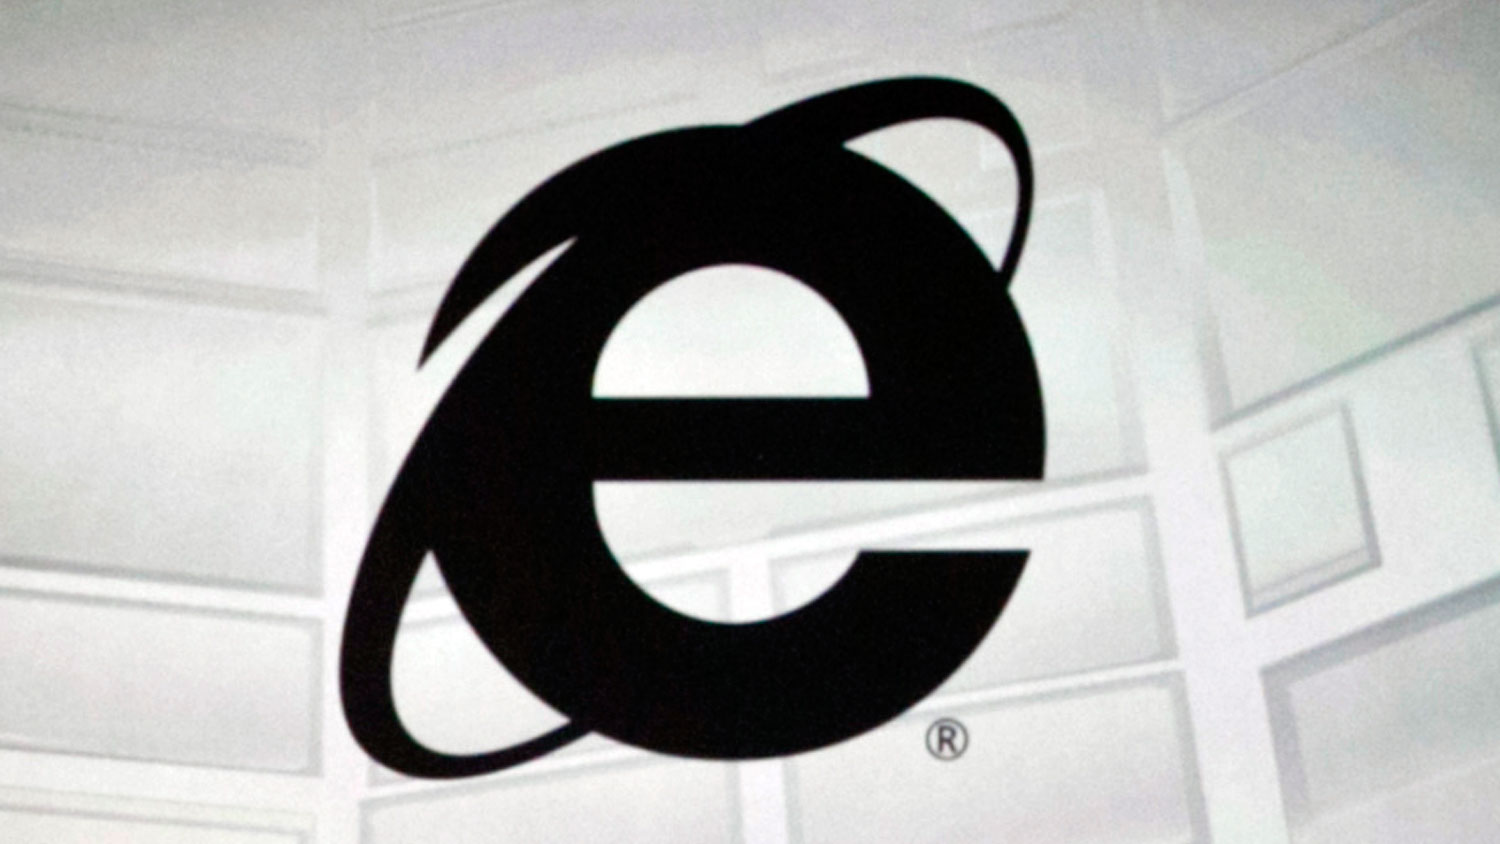 This June 4, 2012 photo shows the Microsoft Internet Explorer logo projected on a screen during the Microsoft Xbox E3 media briefing in Los Angeles. After 20 years of competing against rival web browsers, Microsoft is close to launching its own alternative to its once-dominant Internet surfing program.